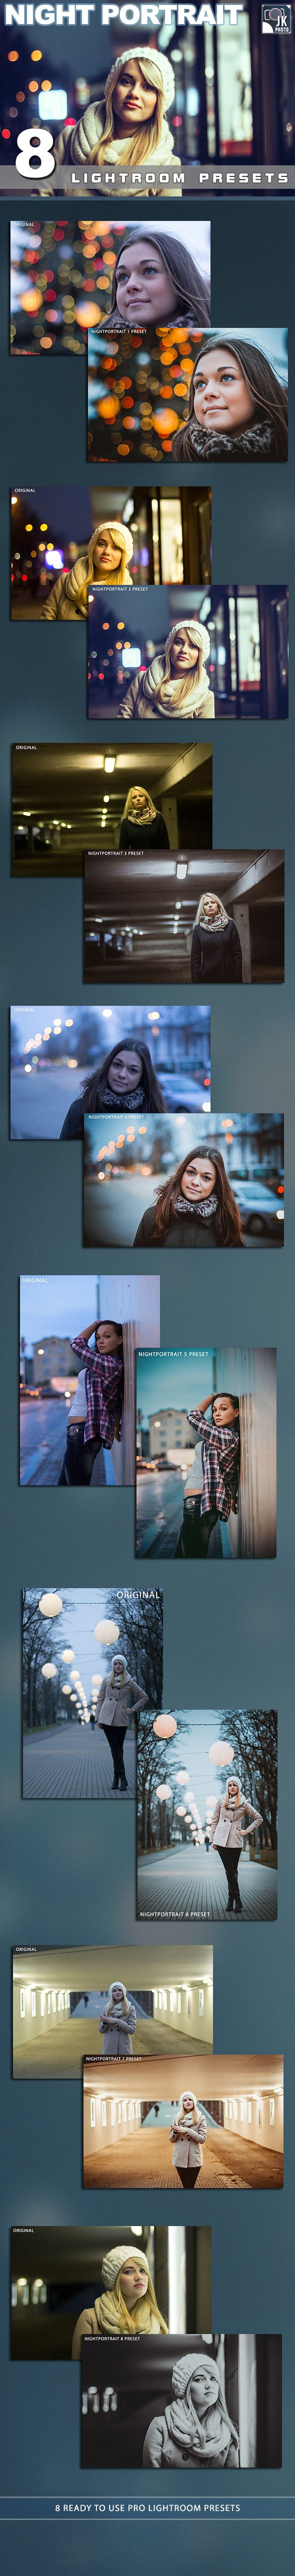 8 Night Portrait Lightroom Presets